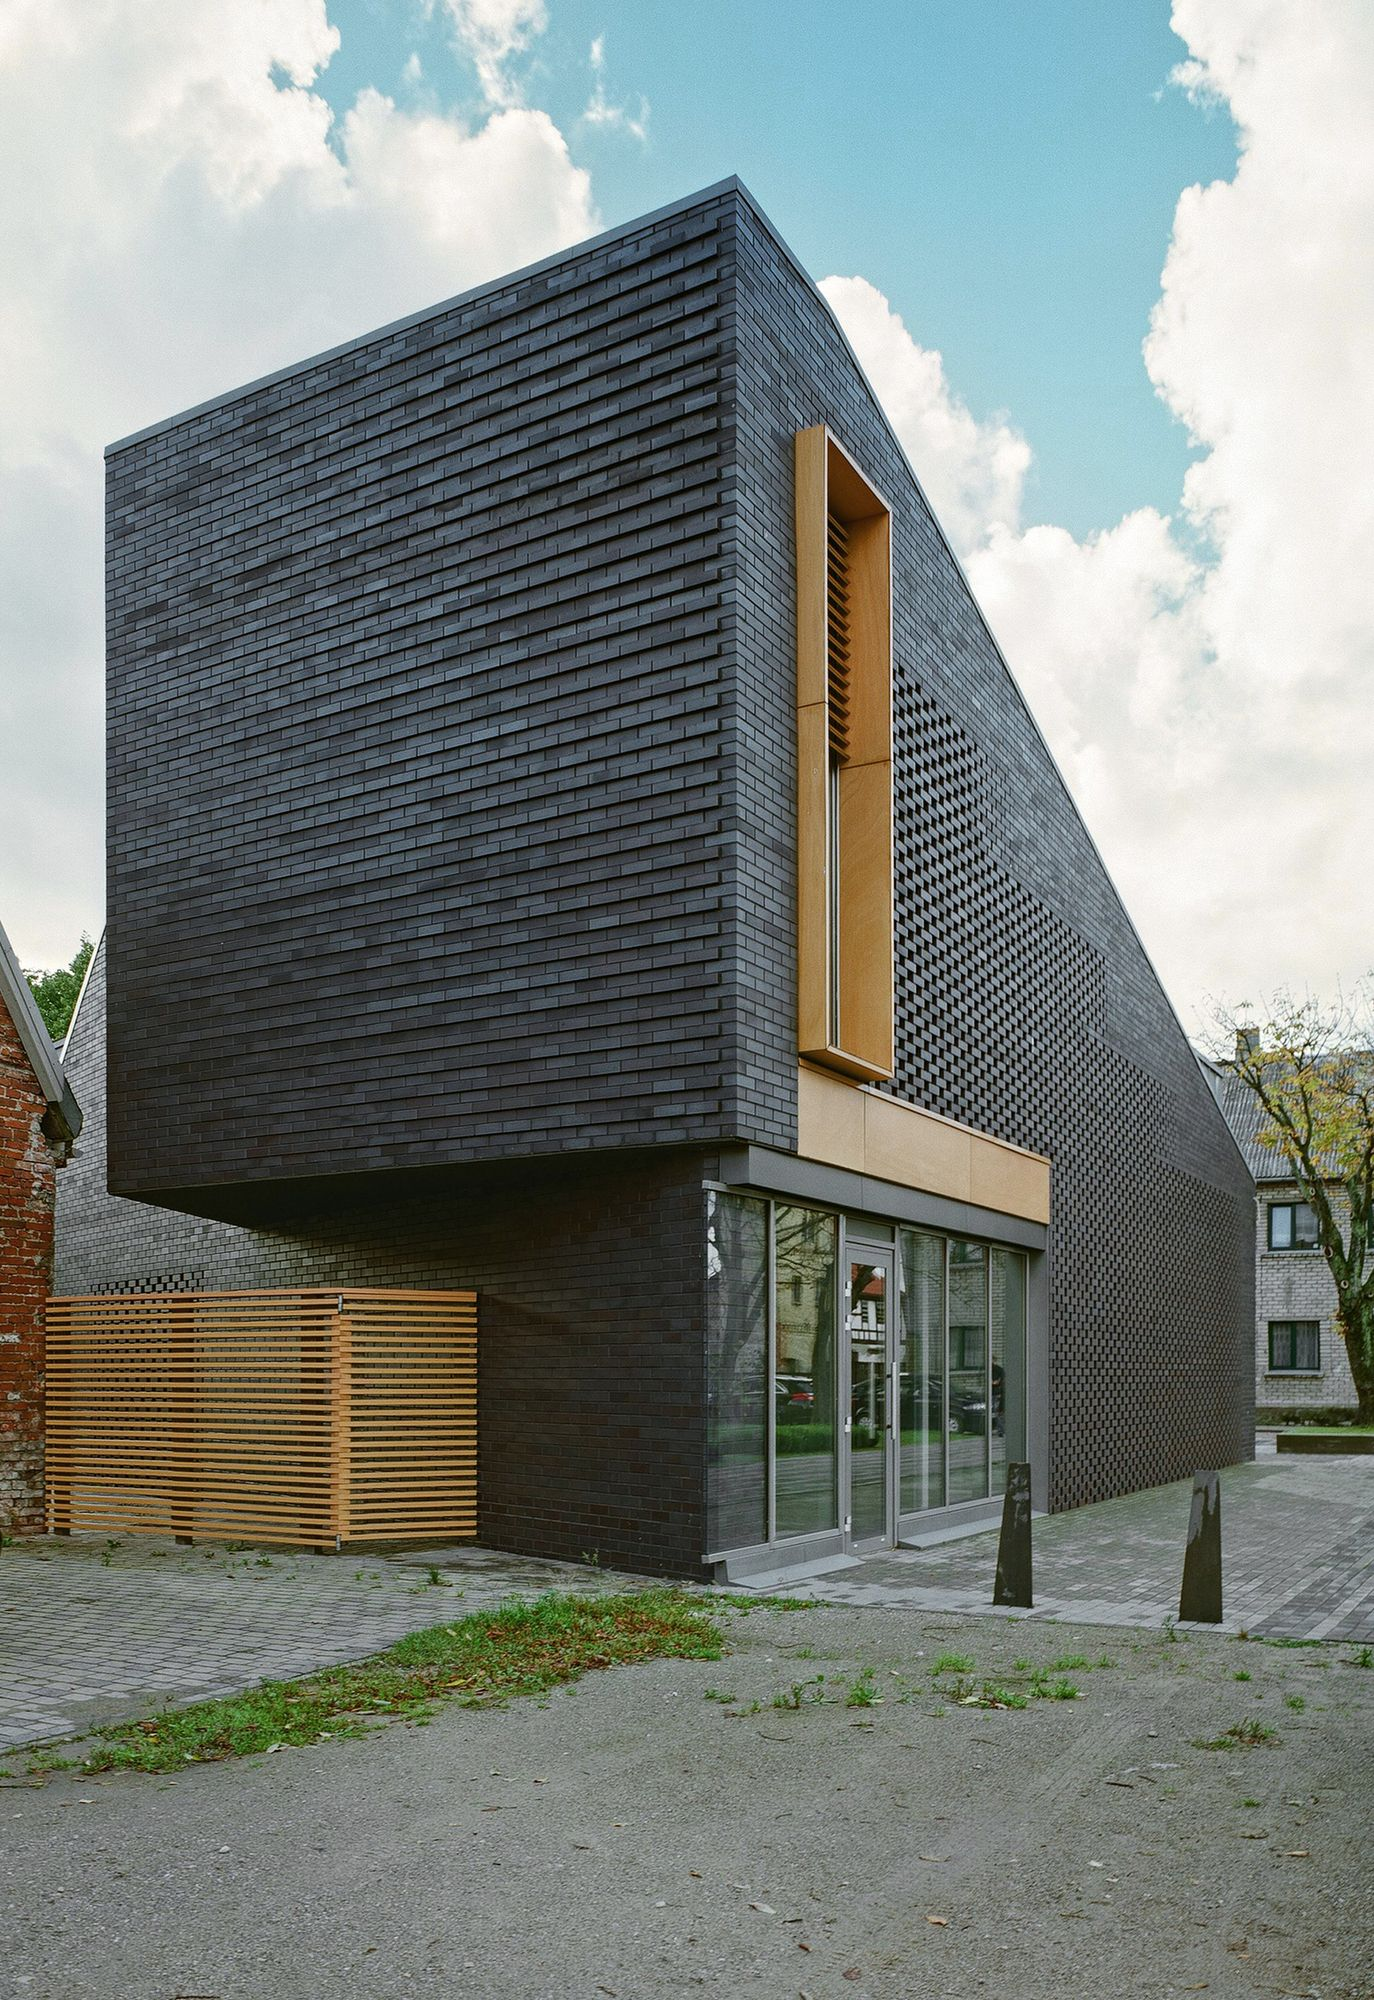 35 cool building facades featuring unconventional design strategiesCool House Facades #4